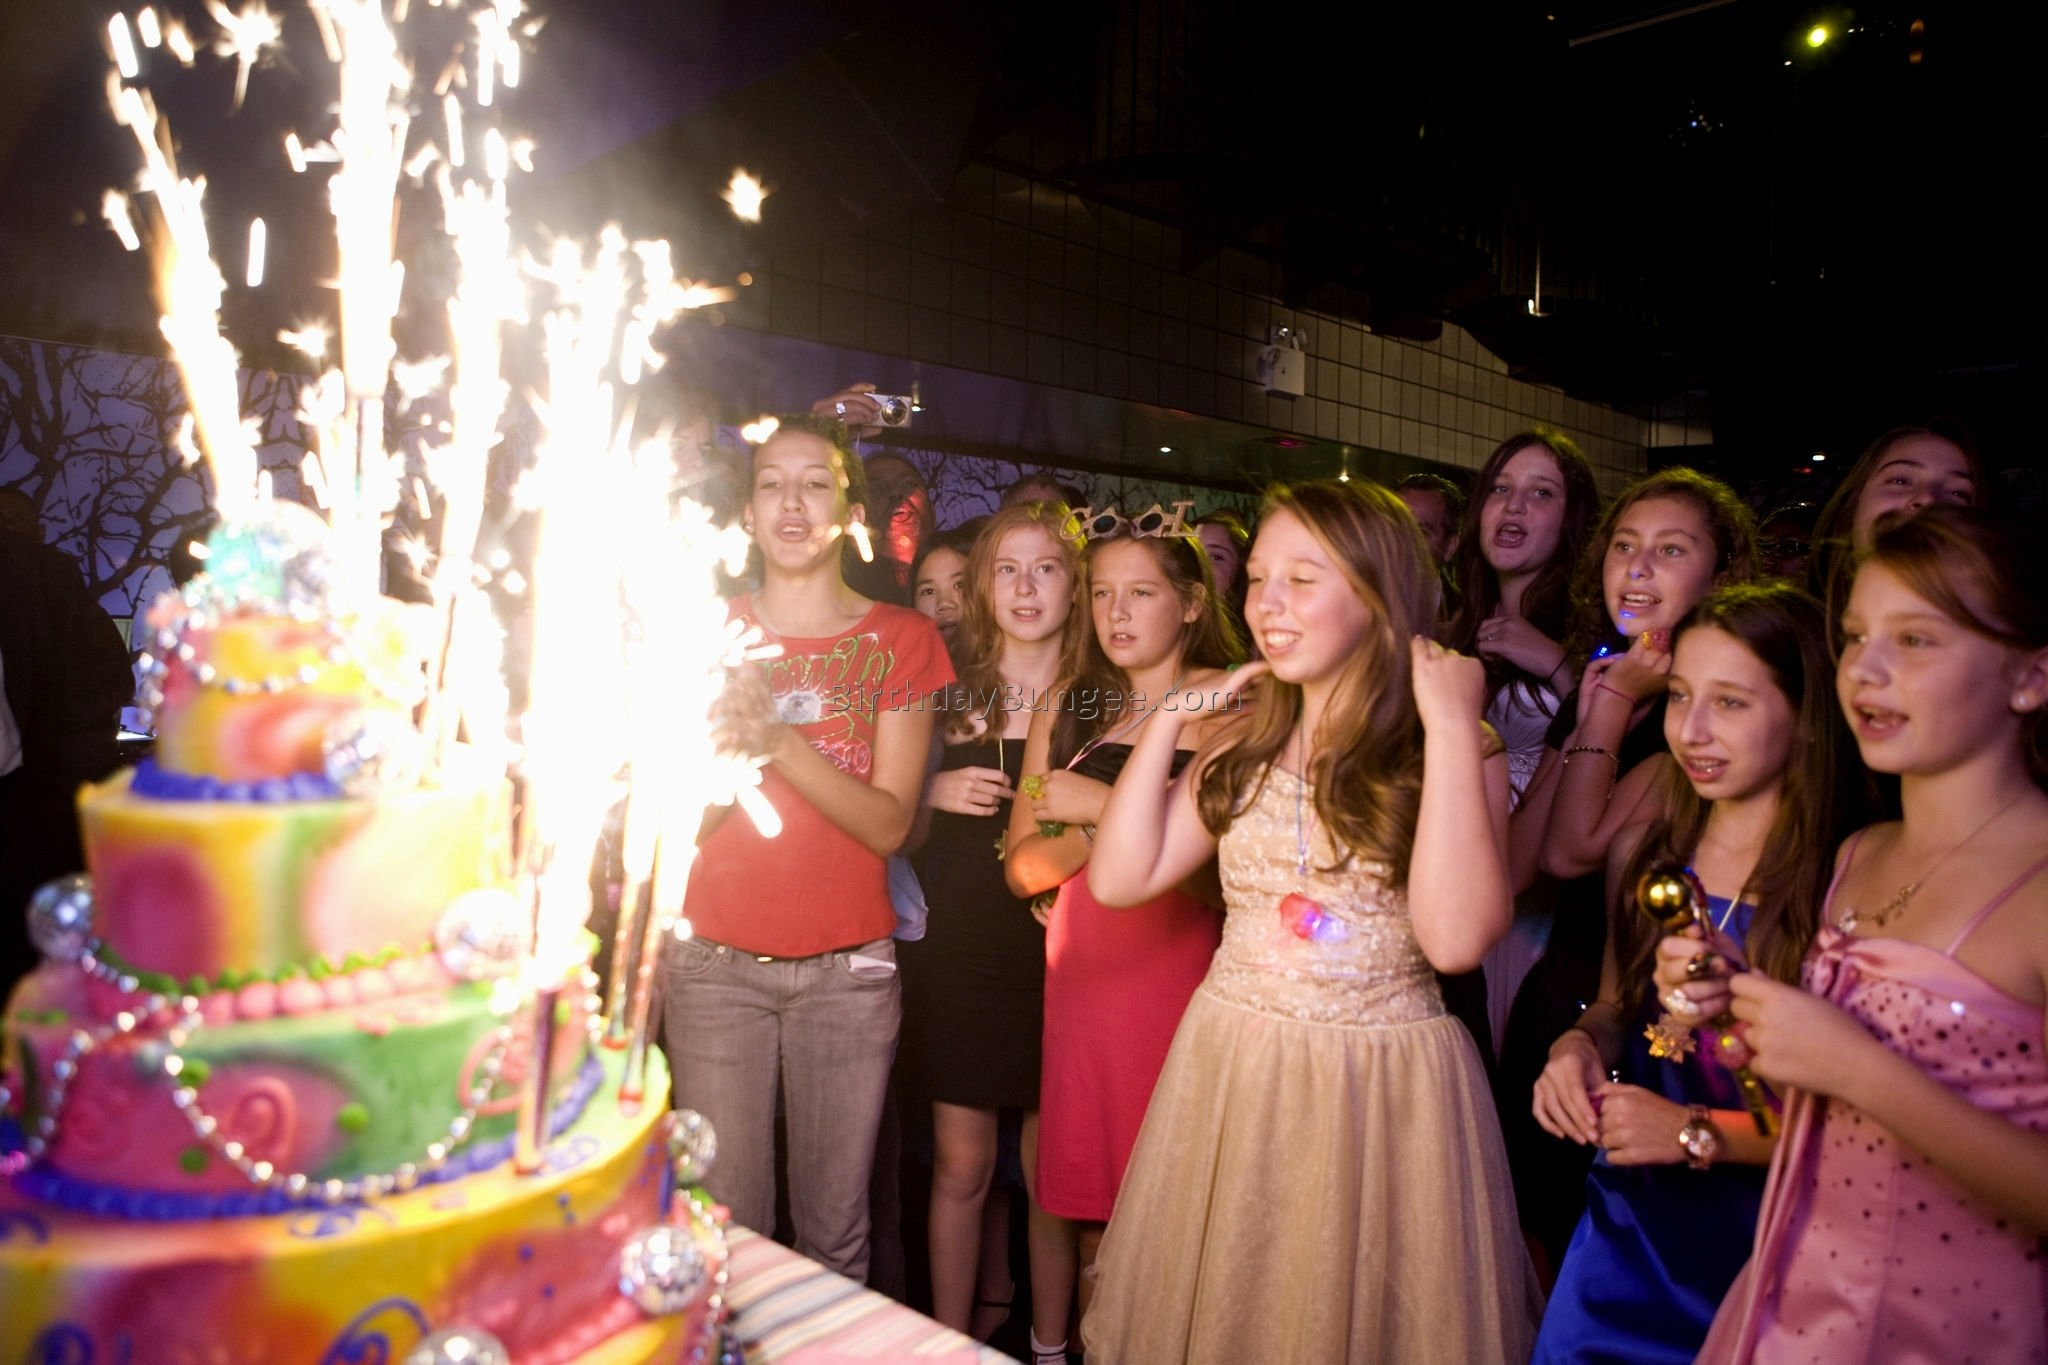 10 Trendy Birthday Party Ideas For A 13 Year Old stylish 13 year old boy birthday party ideas ideas birthday ideas 1 2020